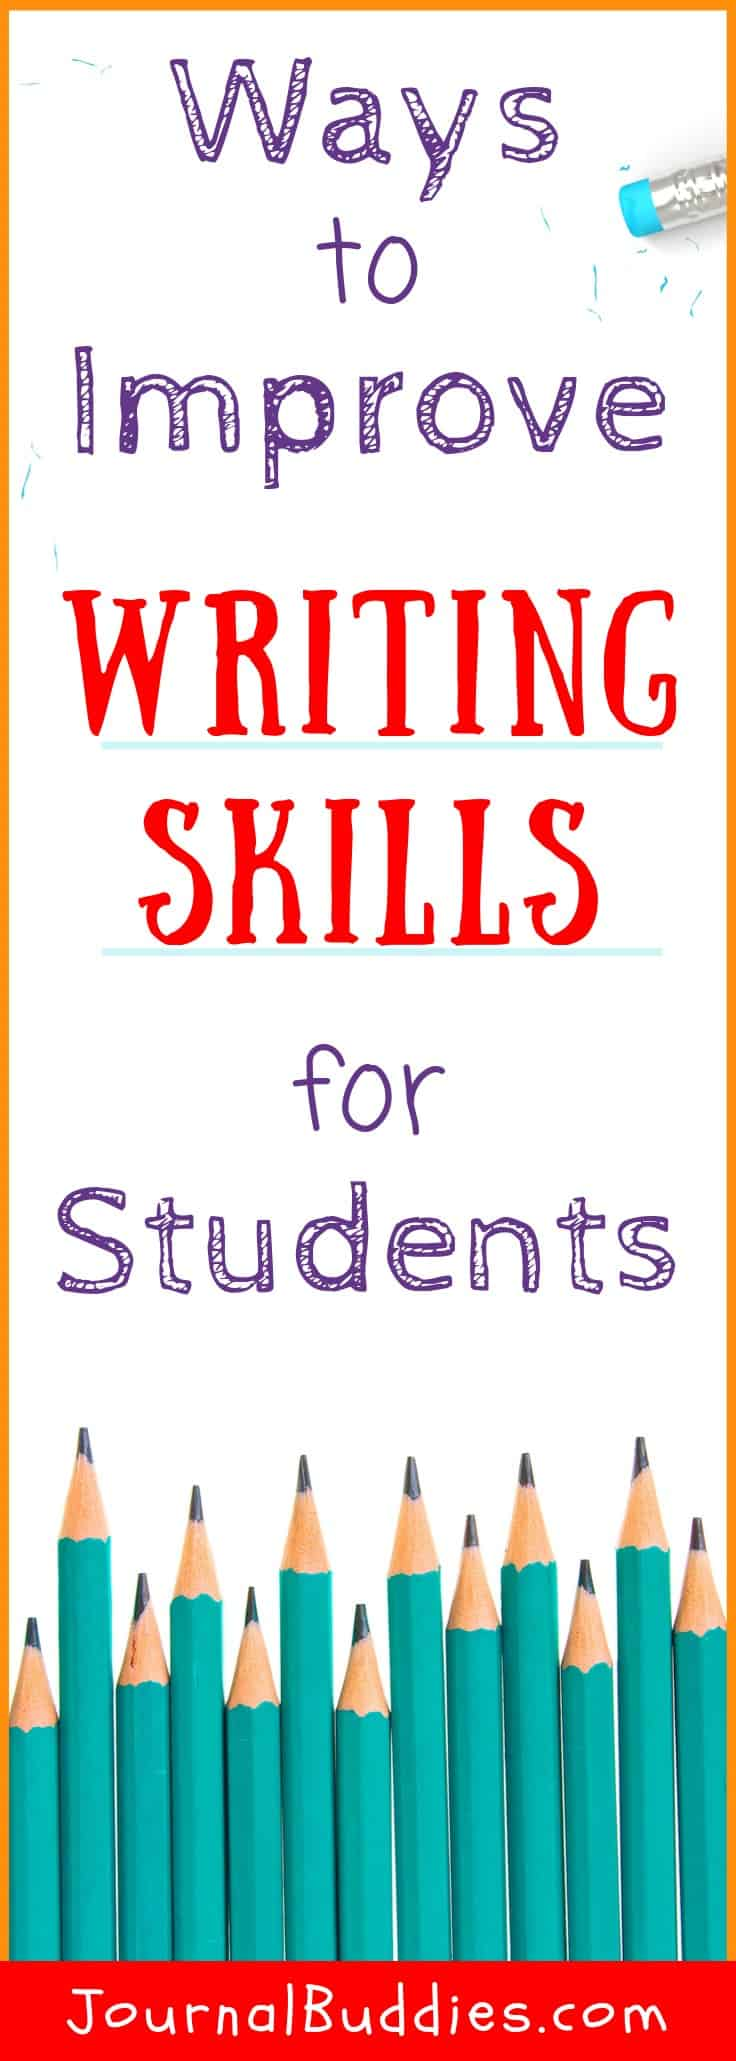 Students' Writing Skills Improvement Activities